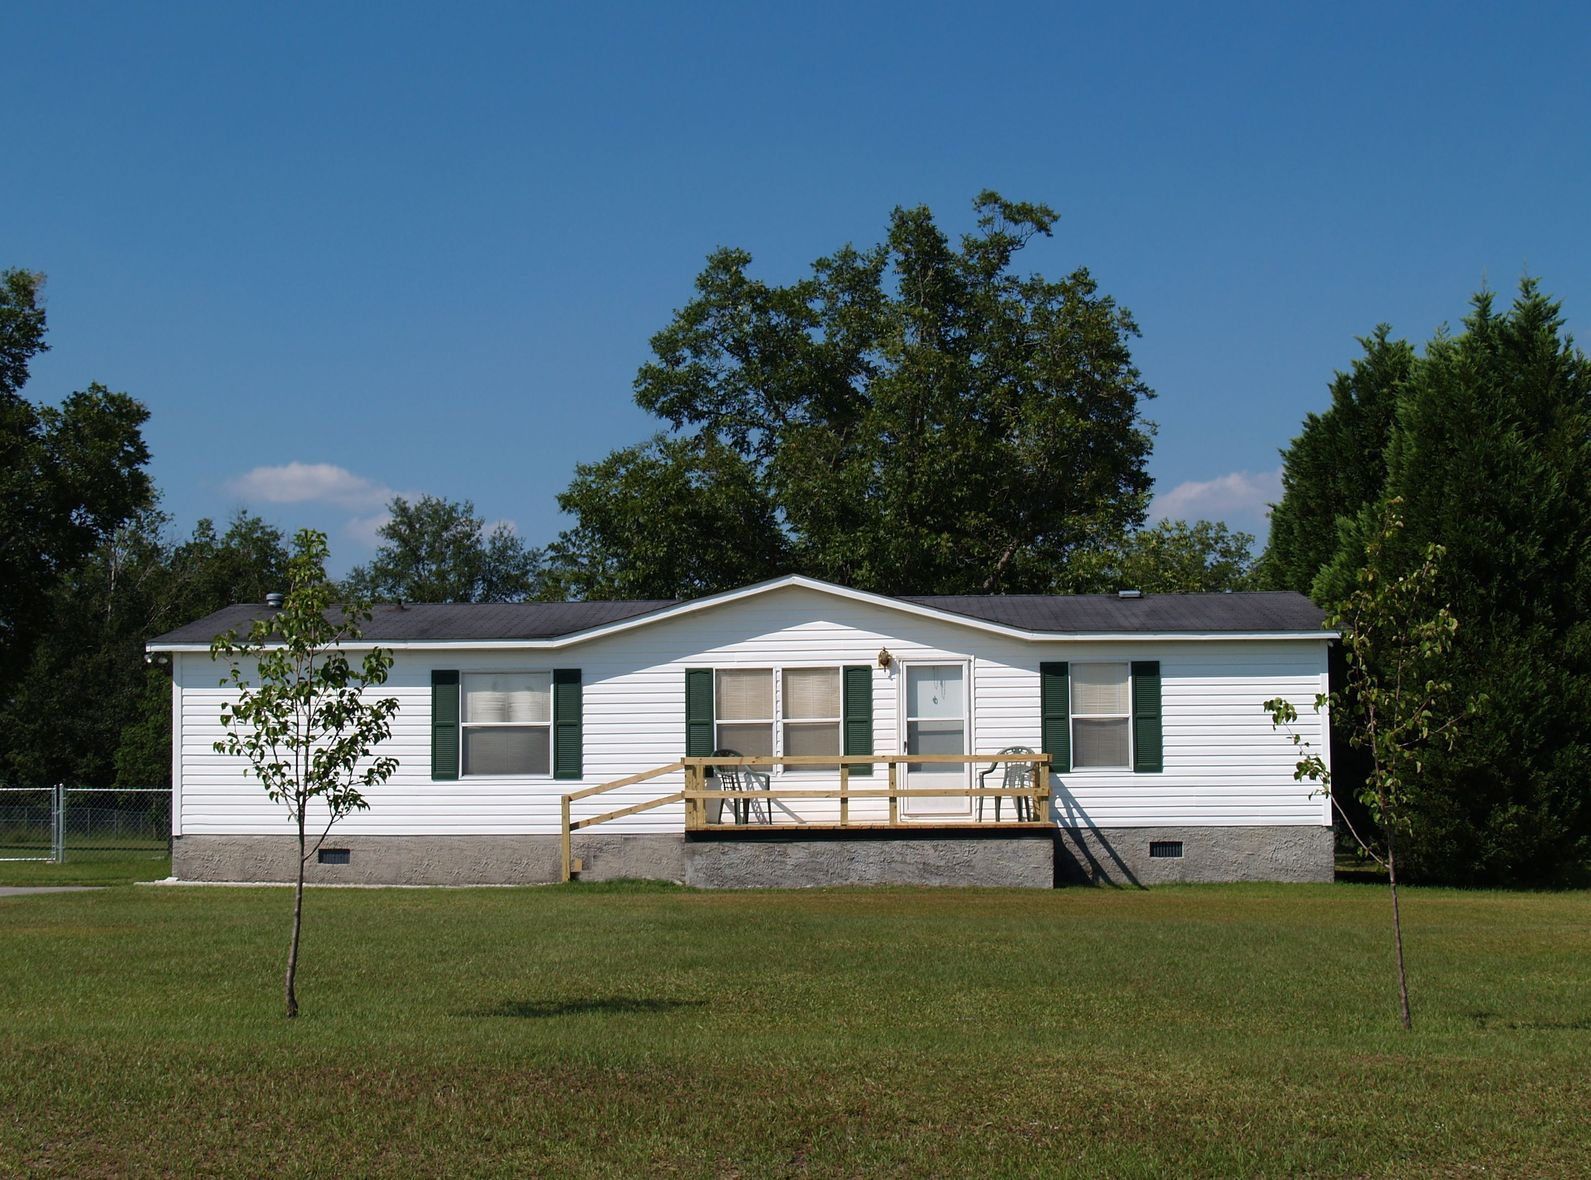 Jacksonville, FL. Mobile Home Insurance